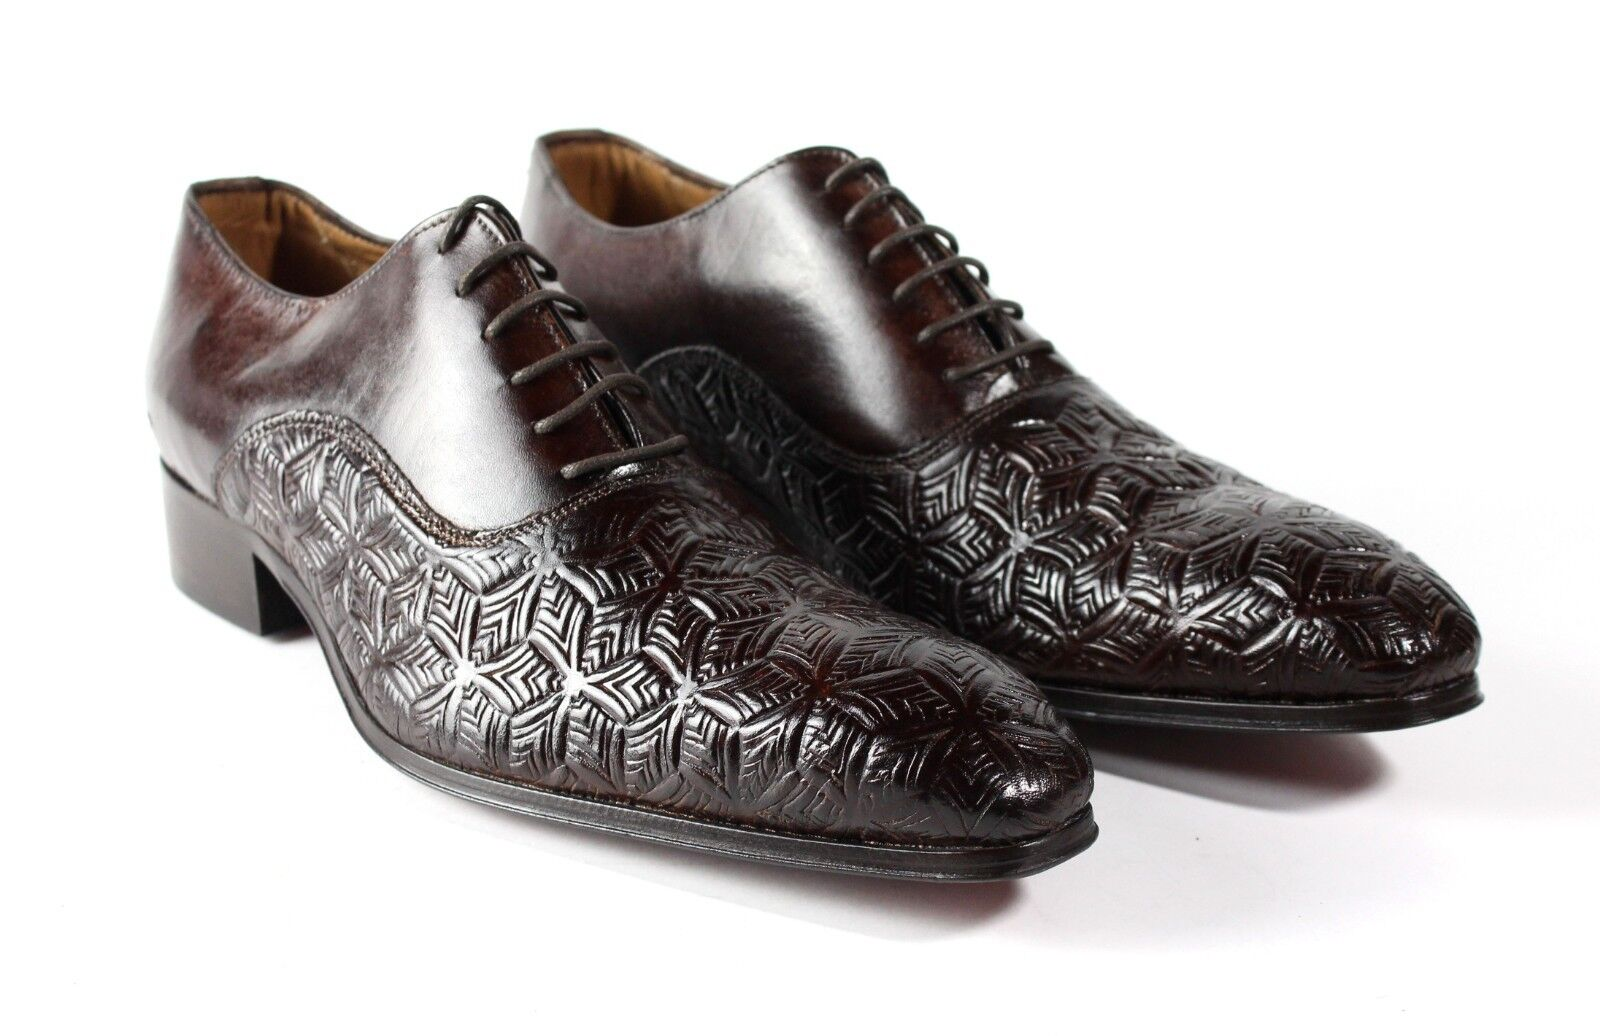 IVAN TROY Brown Zou Handmade Italian Leather Dress shoes Oxford Office shoes